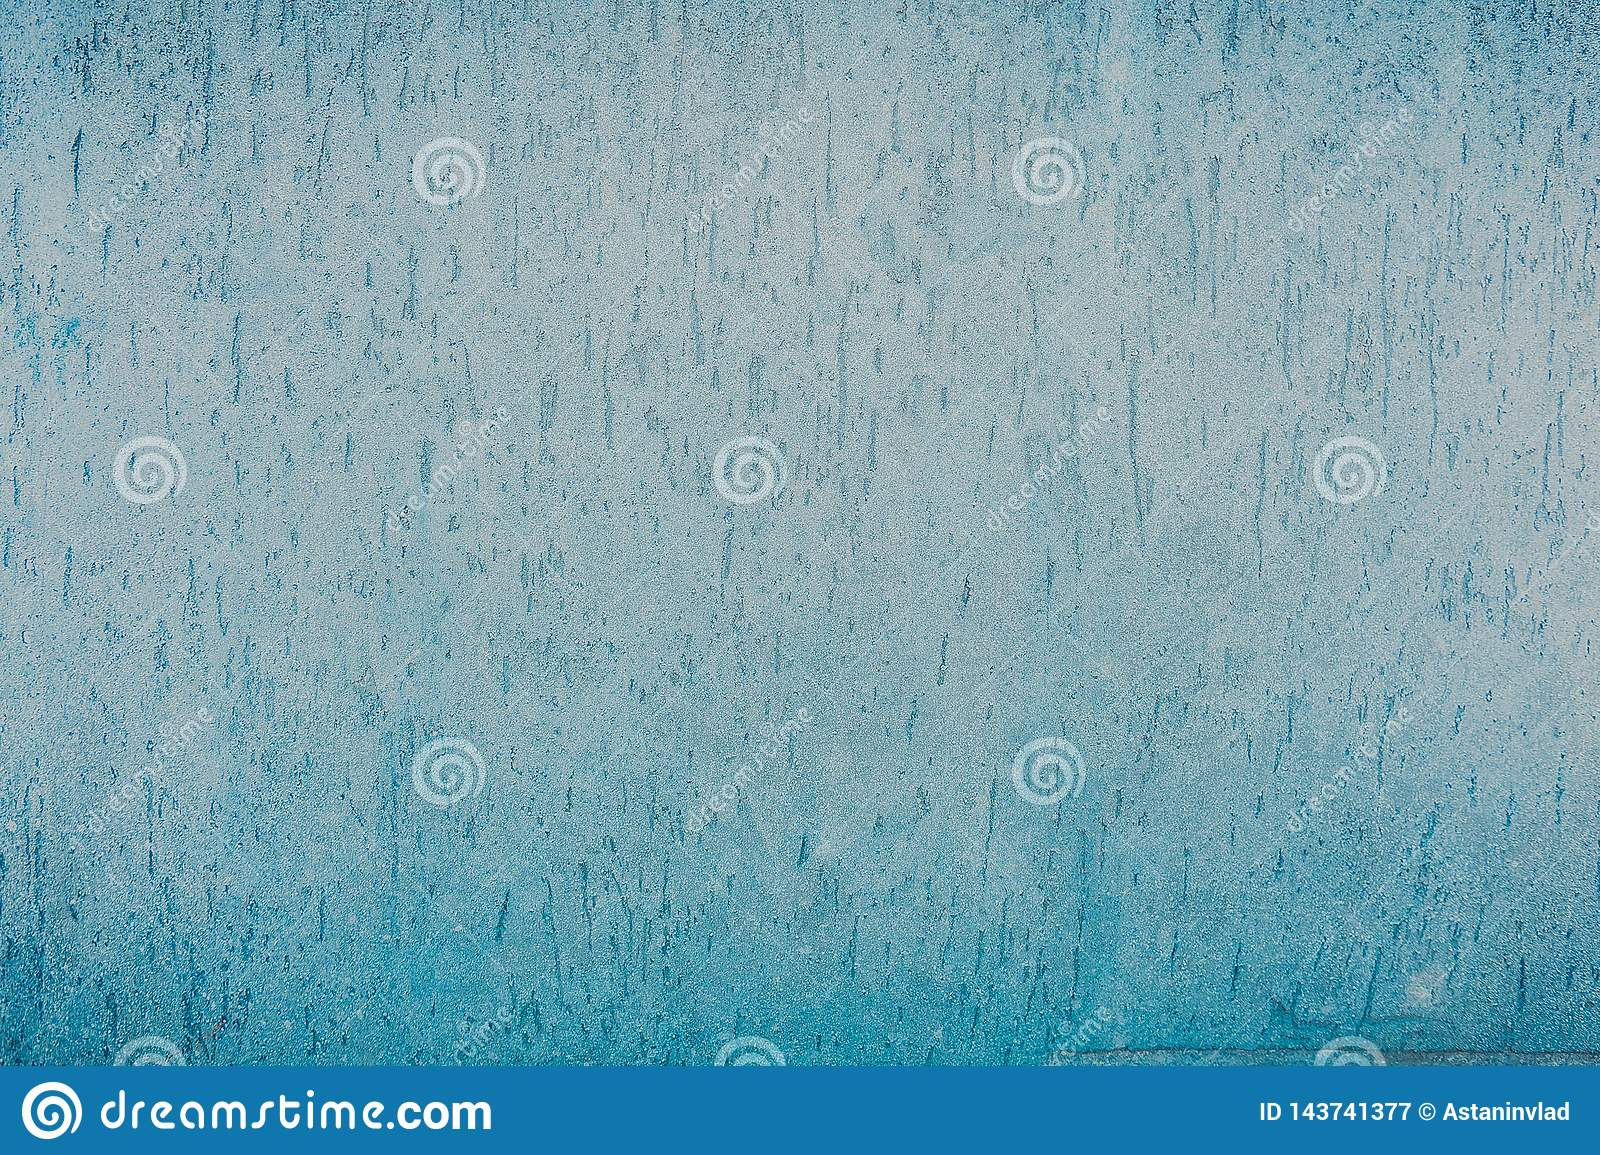 Blue snow texture, frosty freshness, cold winter, snow background, winter pattern